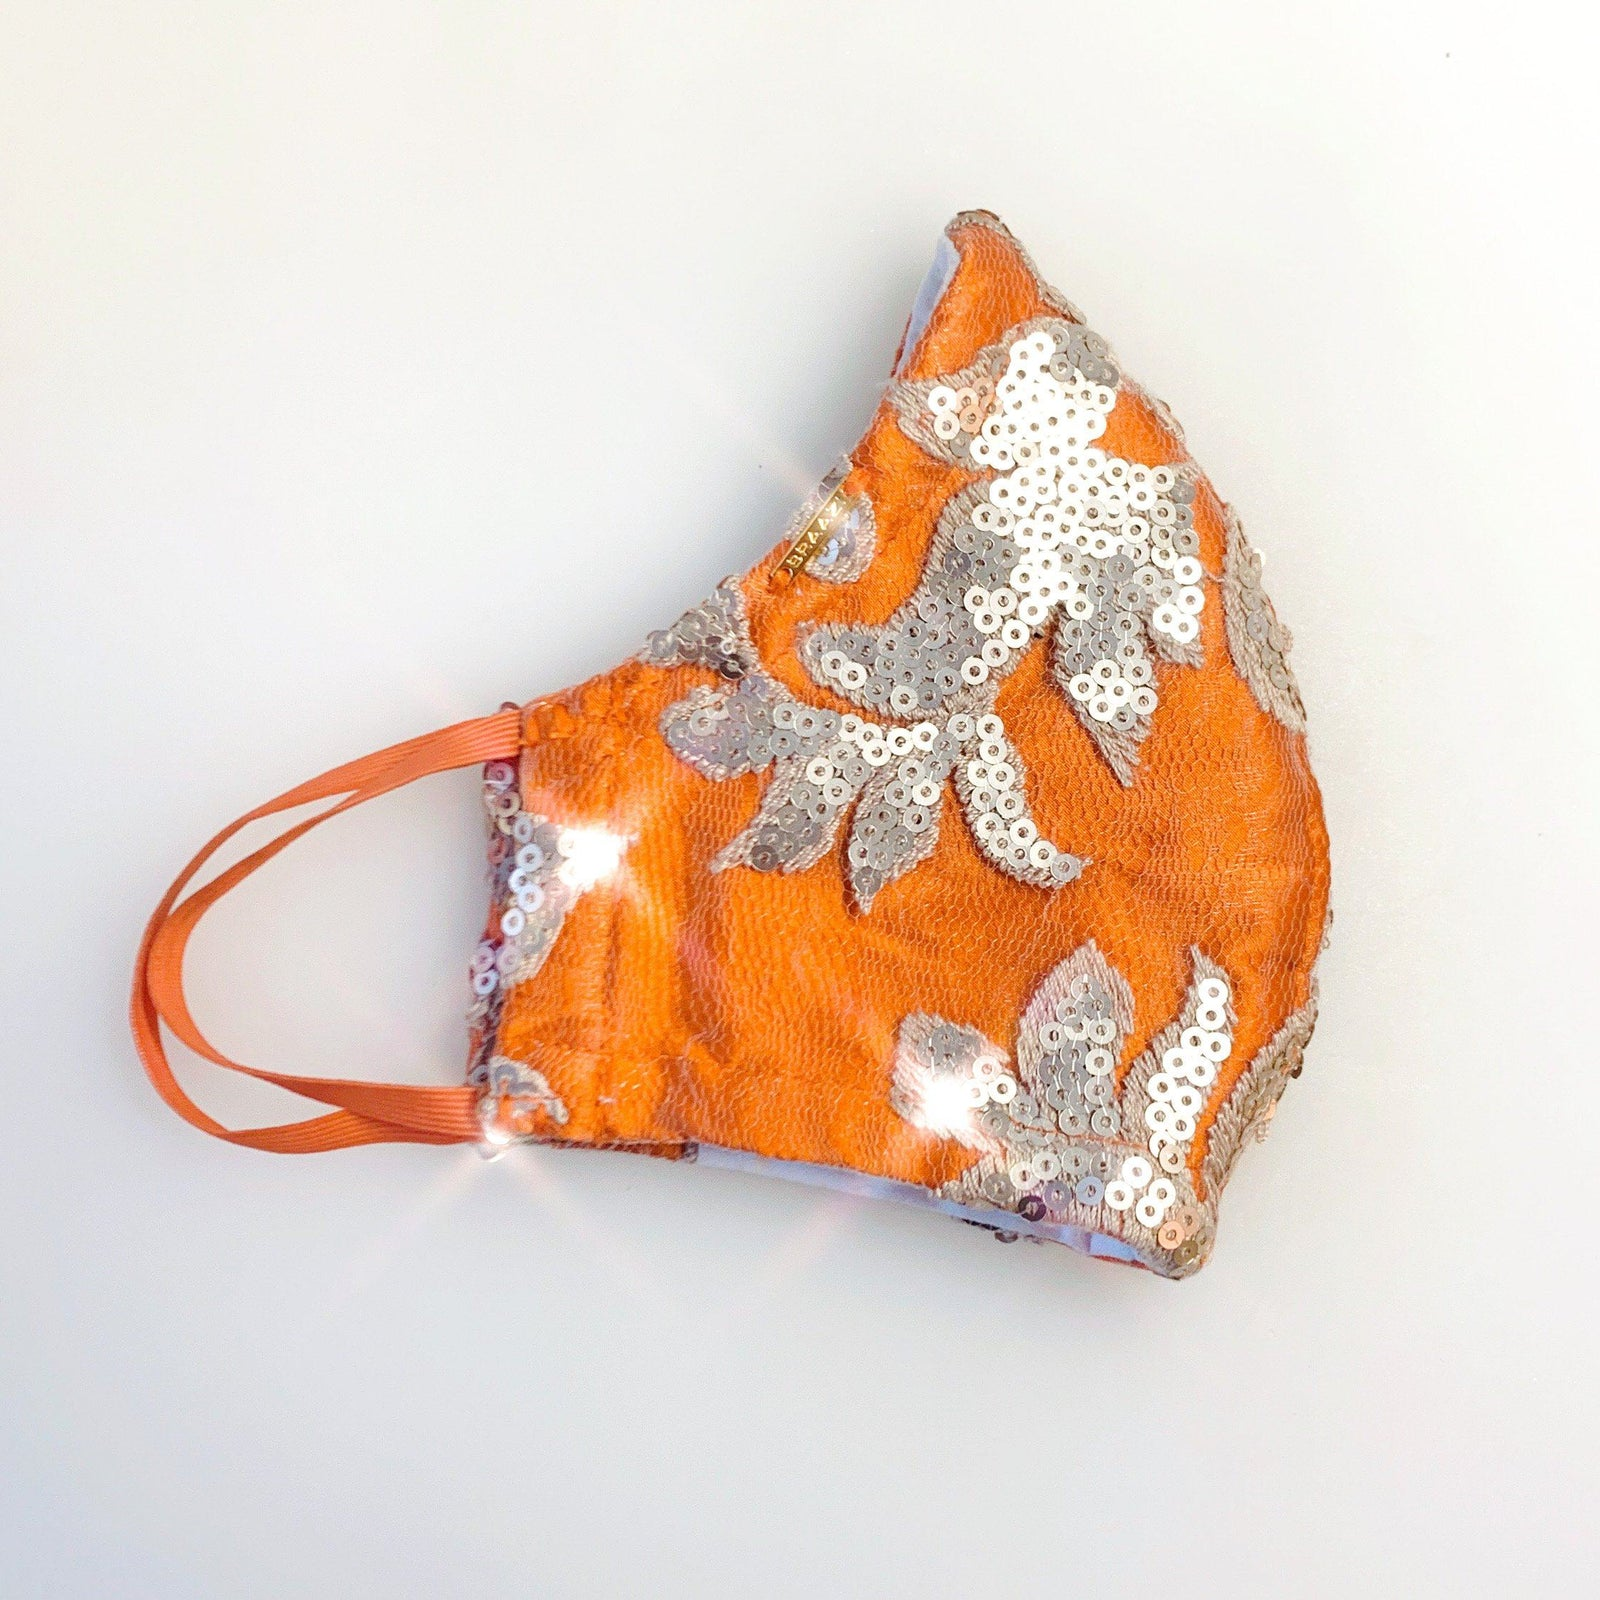 Burnt Orange Sequinned Silk Face Mask Lined With 2 layers of 100% Cotton Washable Reusable Filter Pocket